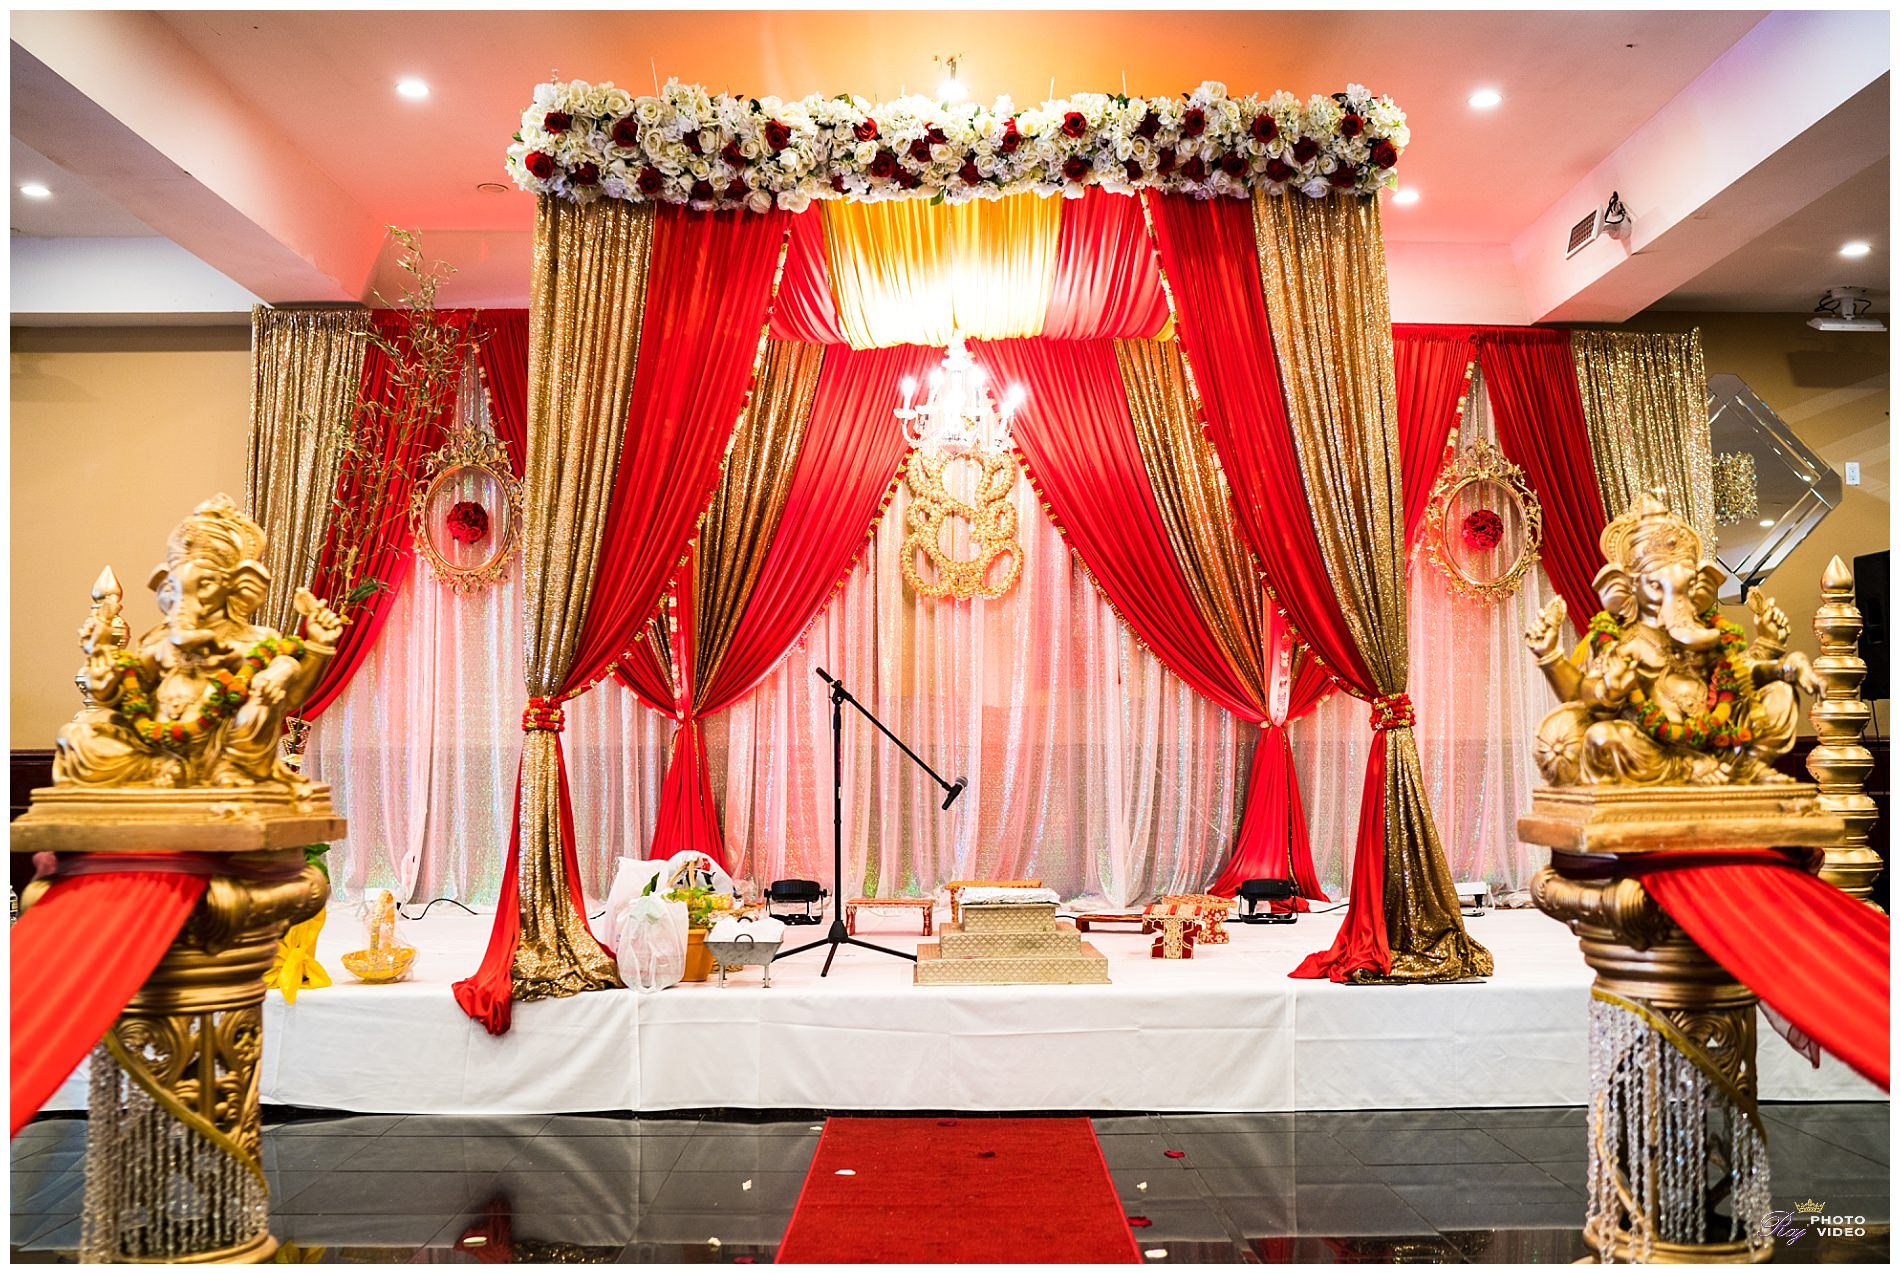 Golden-Terrace-Banquet-Hall-Richmond-Hill-NY-Diana-Shaun-11.jpg